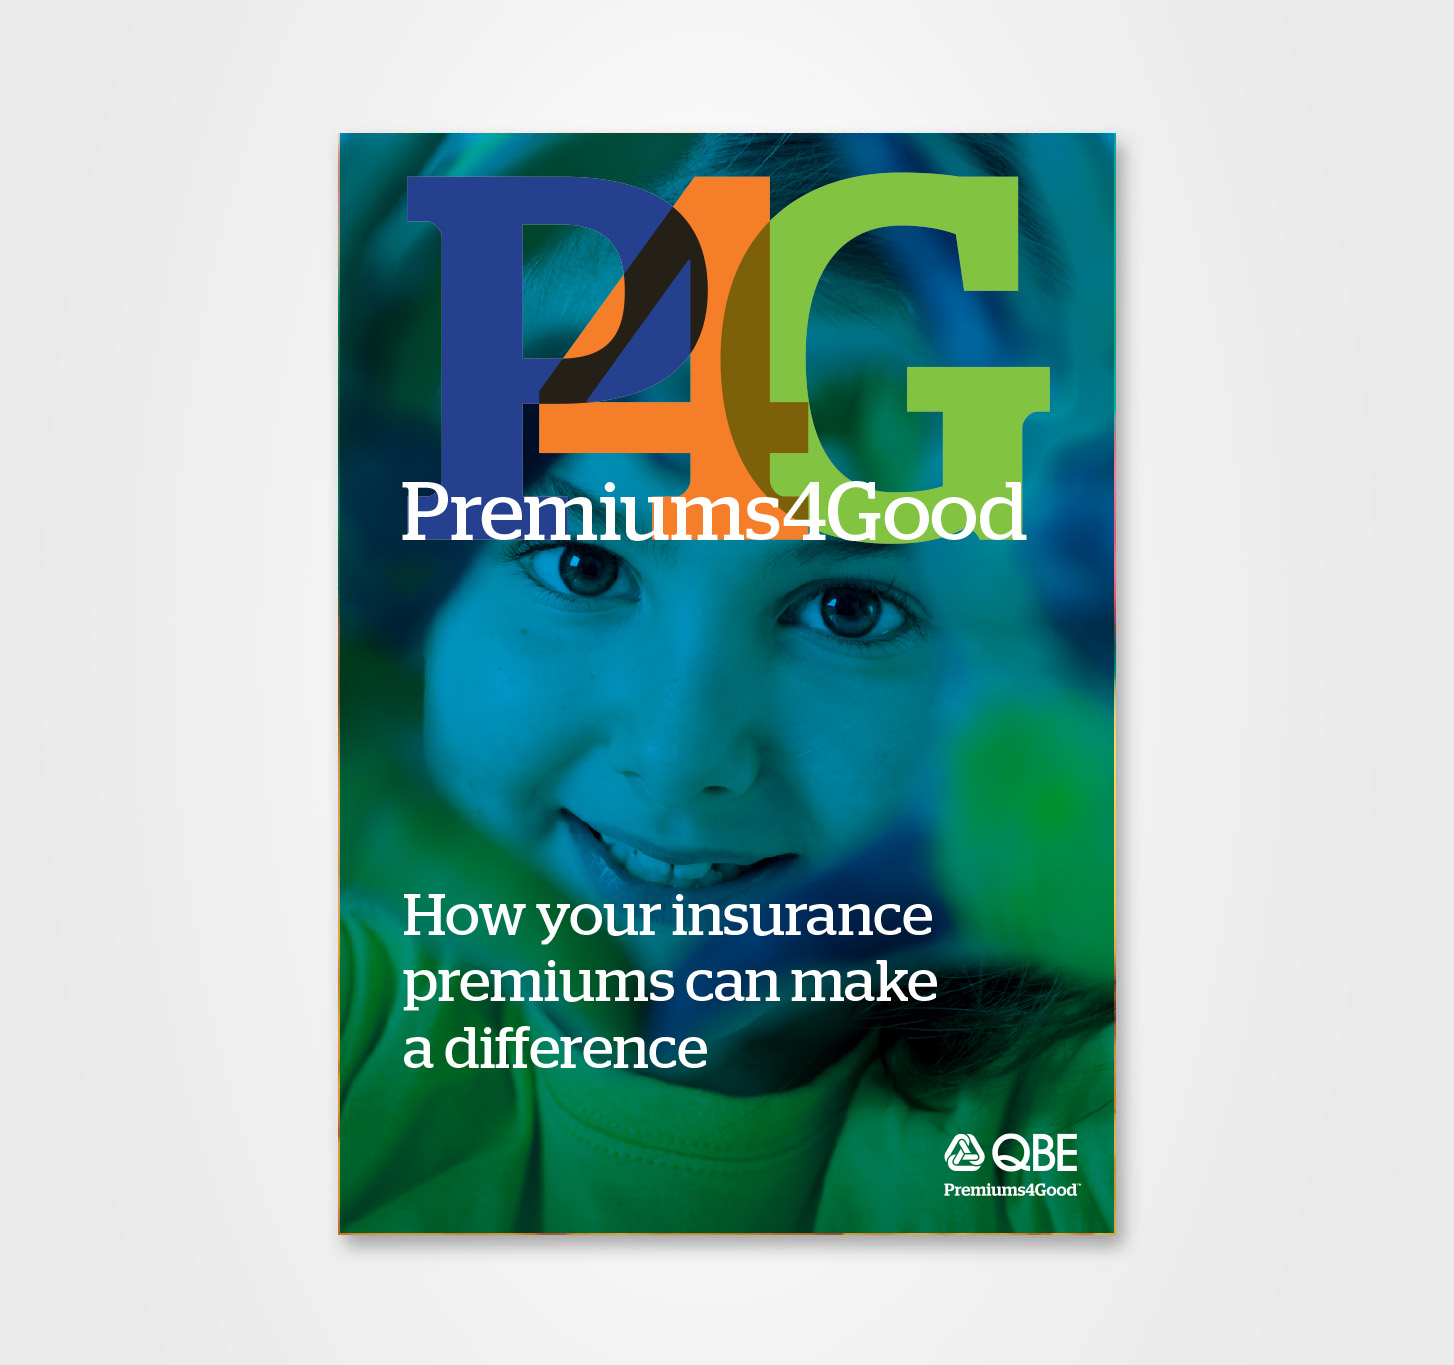 QBE Premiums4Good explained